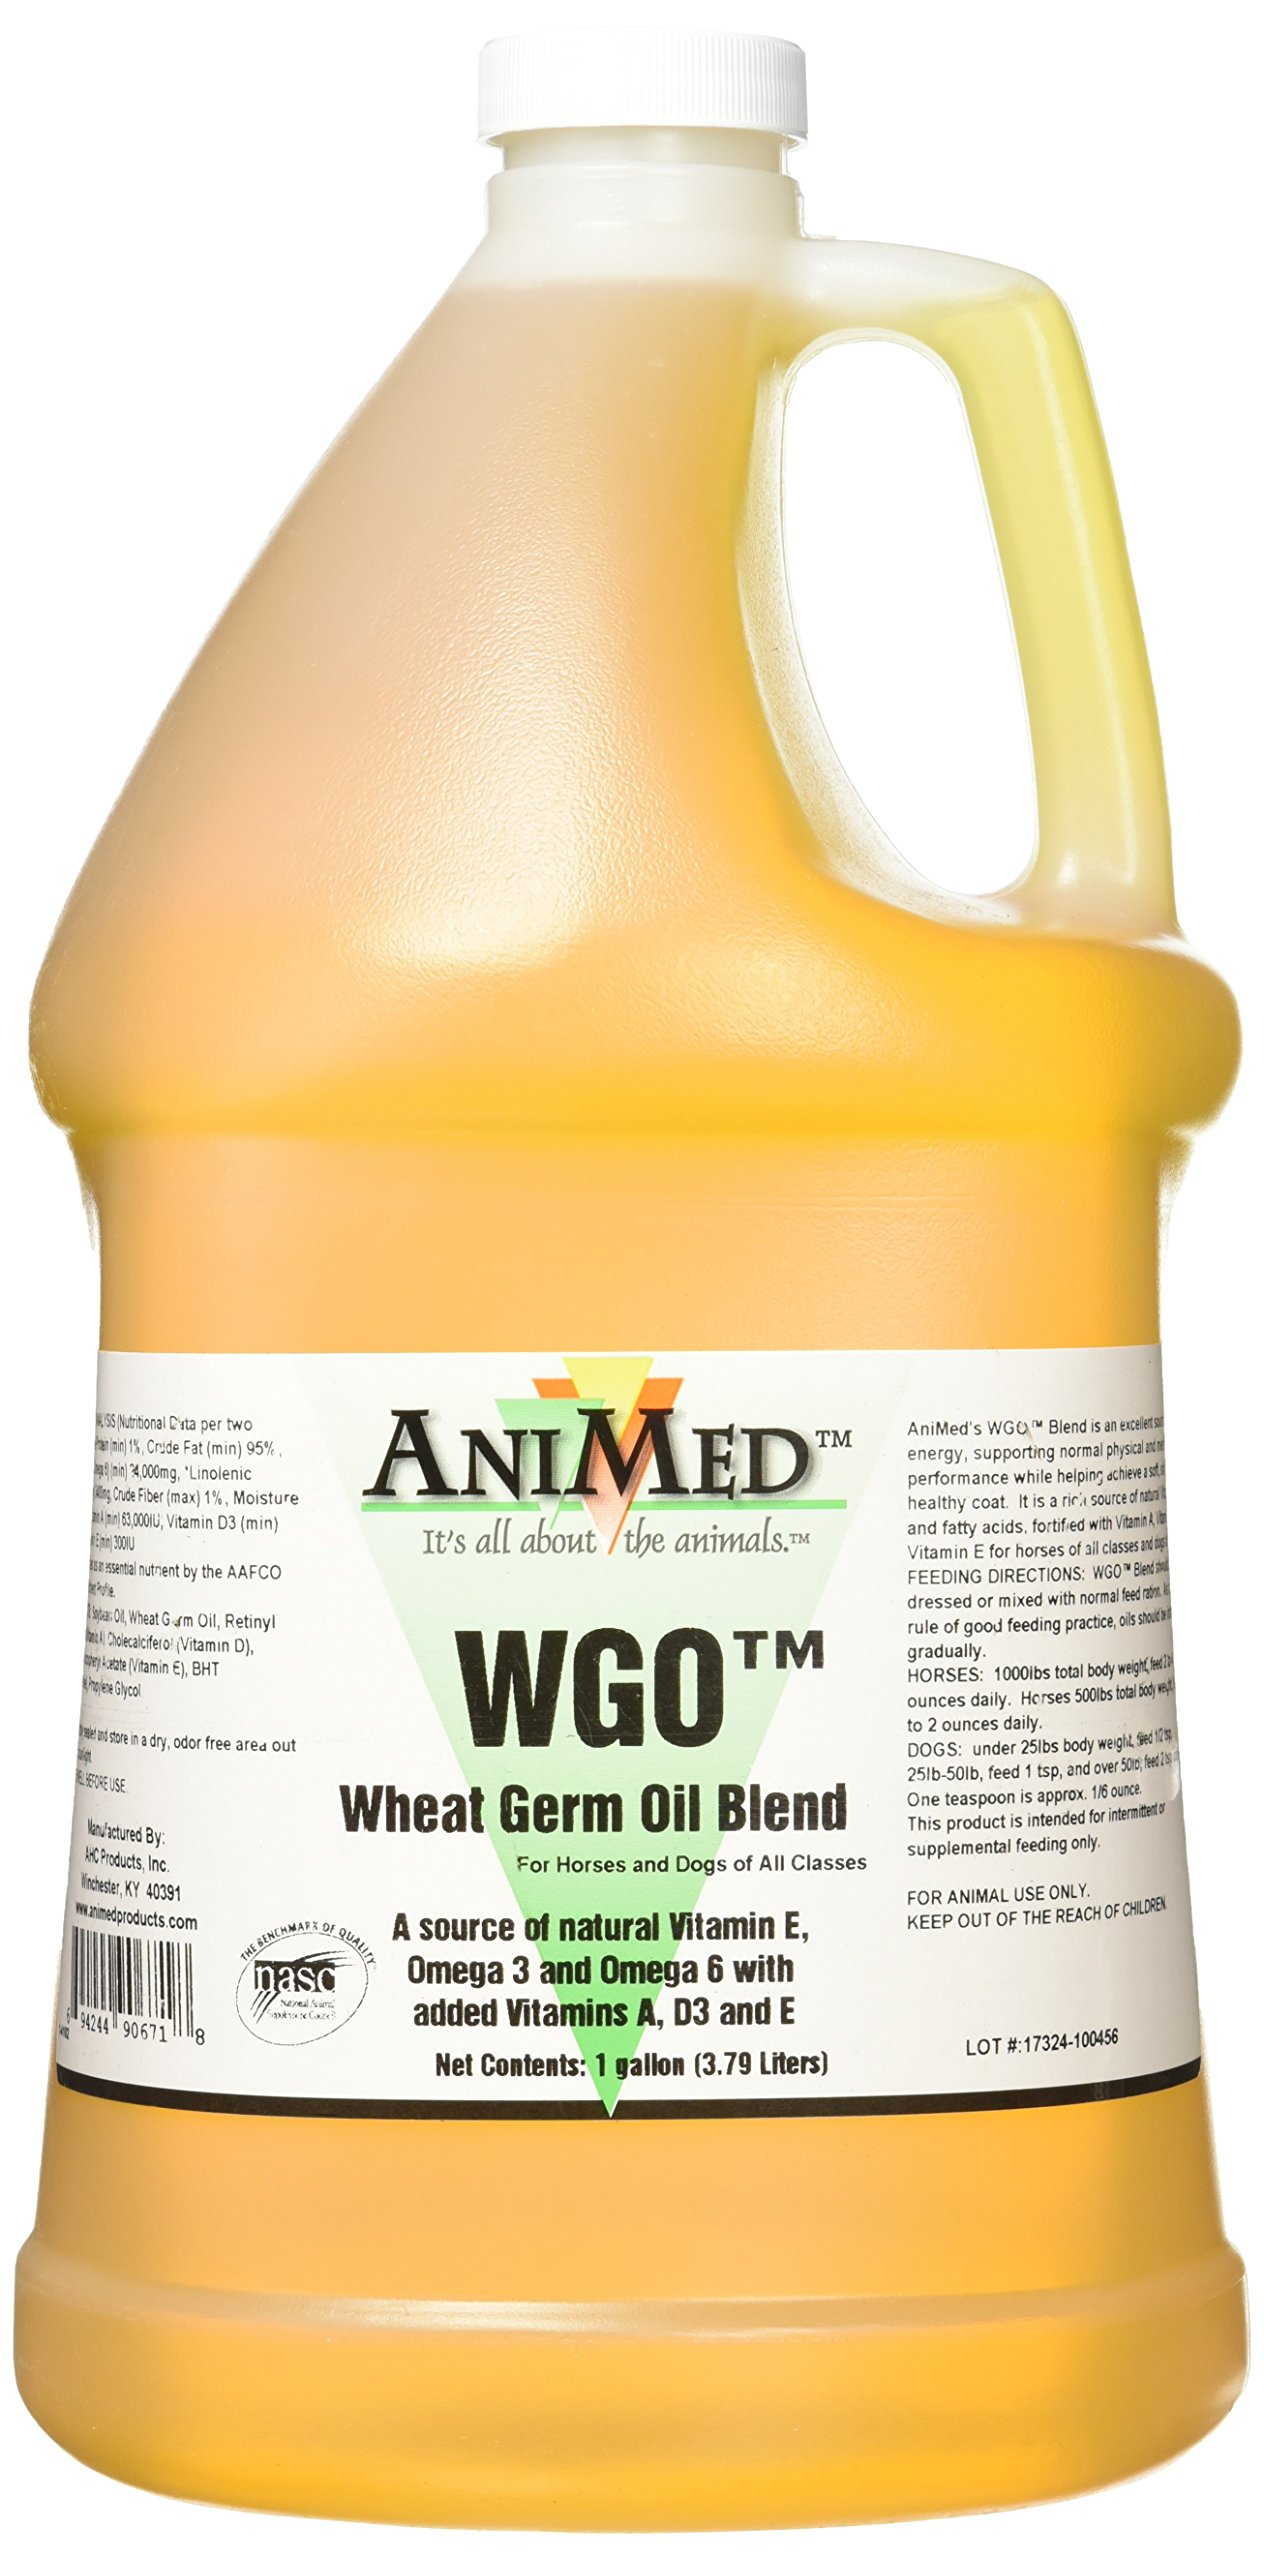 AniMed WGO Wheat Germ Oil Blend For Horses and Dogs (1 Gallon Bottle)